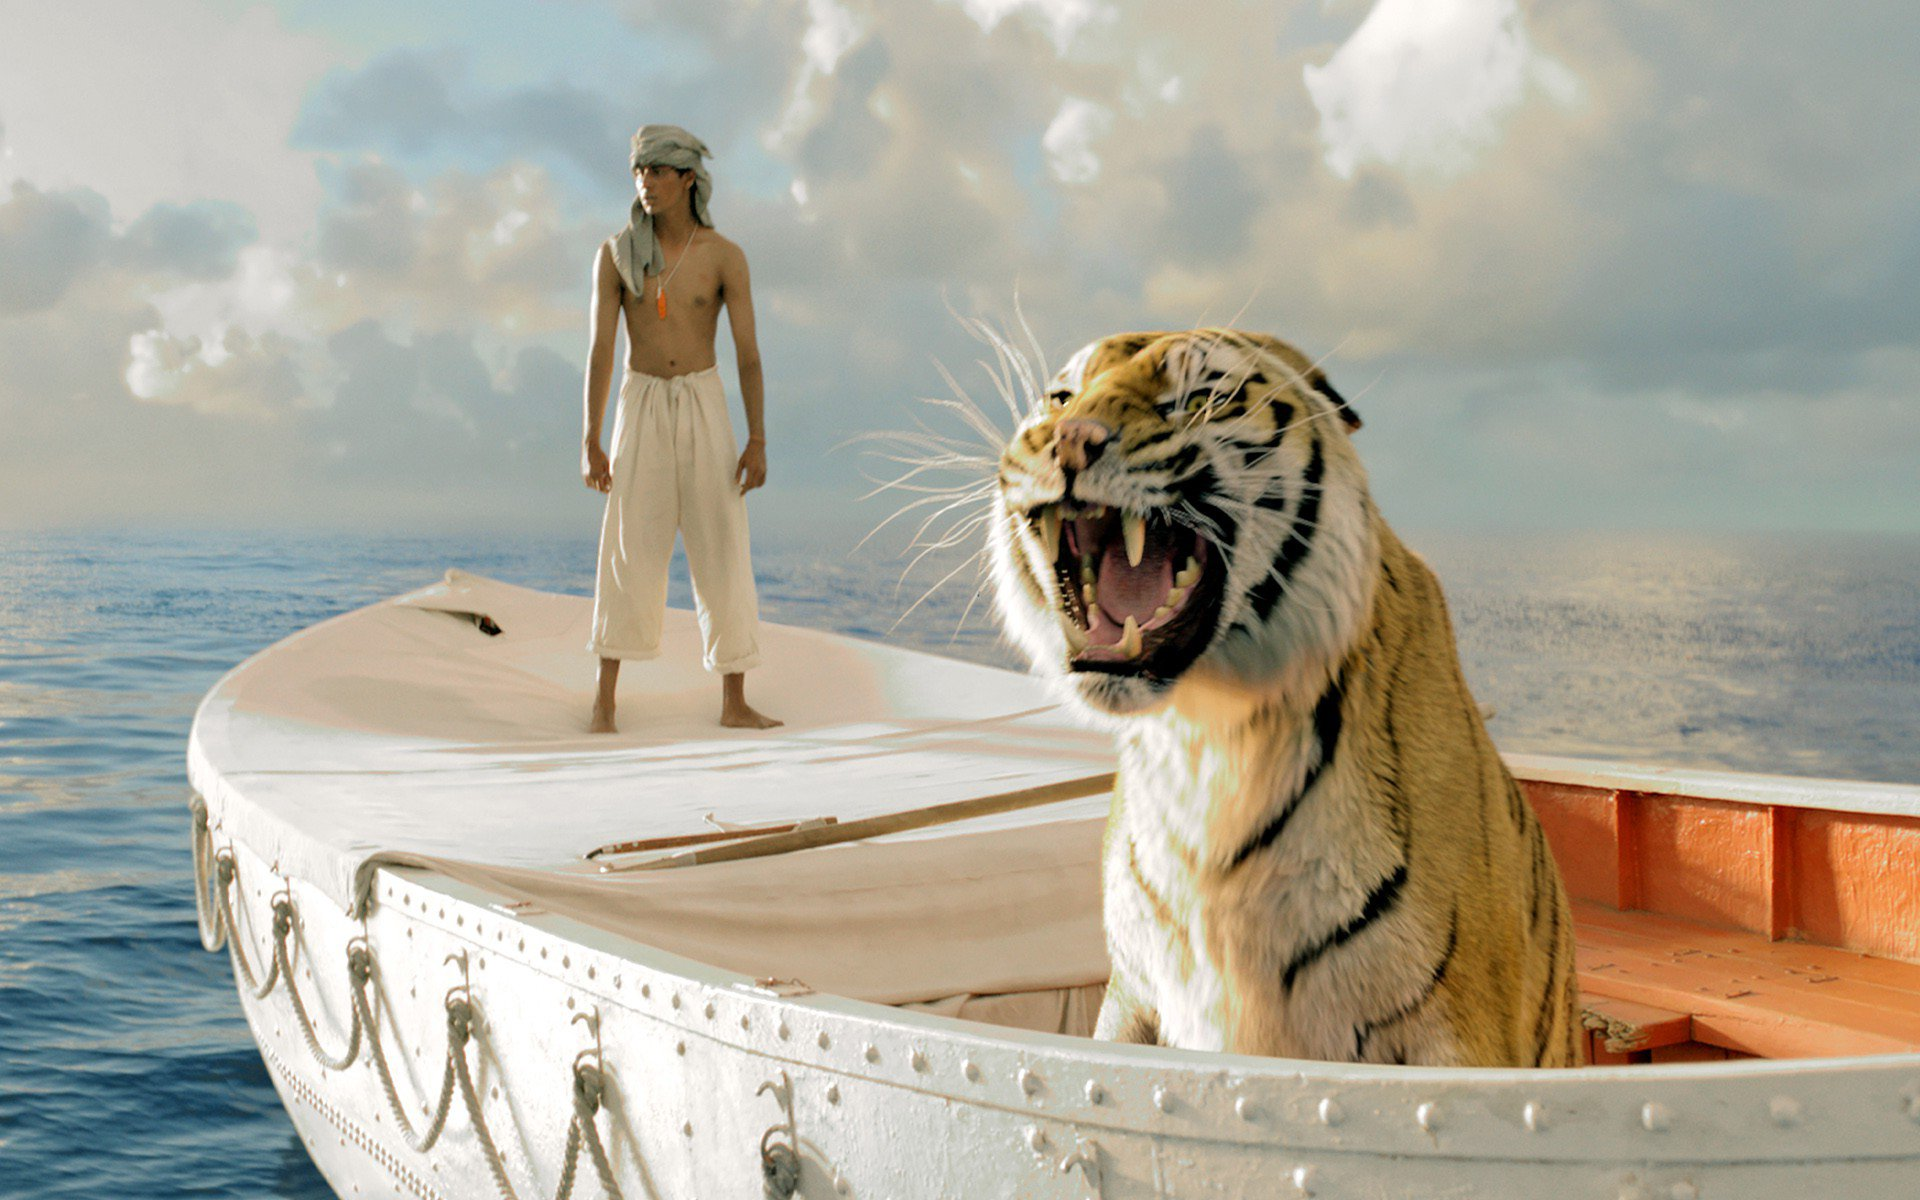 Life of pi family adventure drama fantasy tiger 3 d for Life of pi family